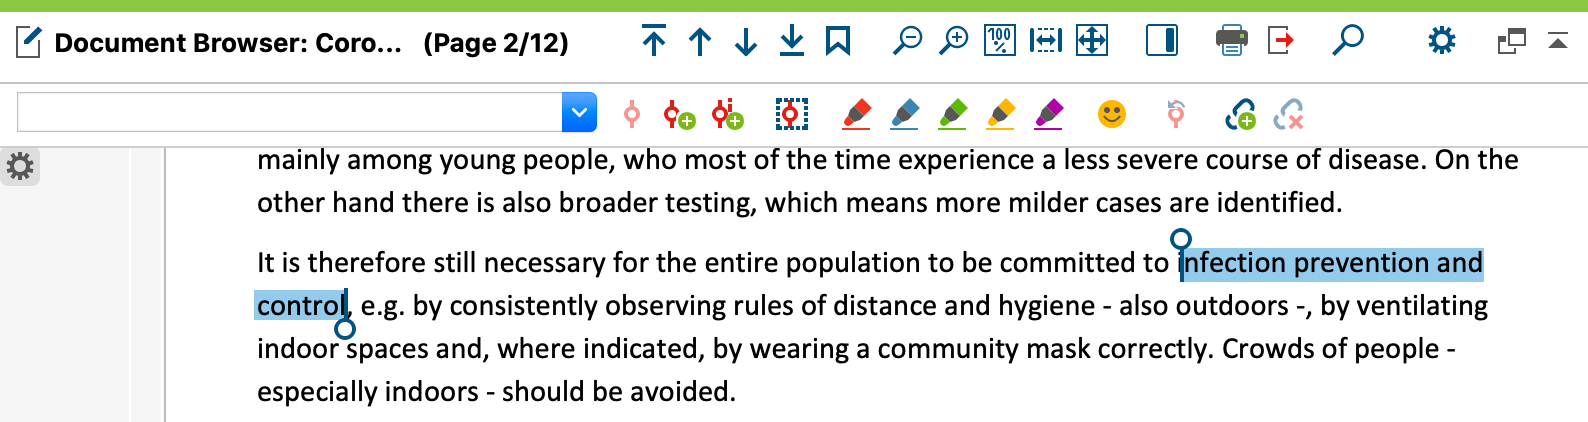 Screenshot from MAXQDA2020 showing a highlighted text passage.